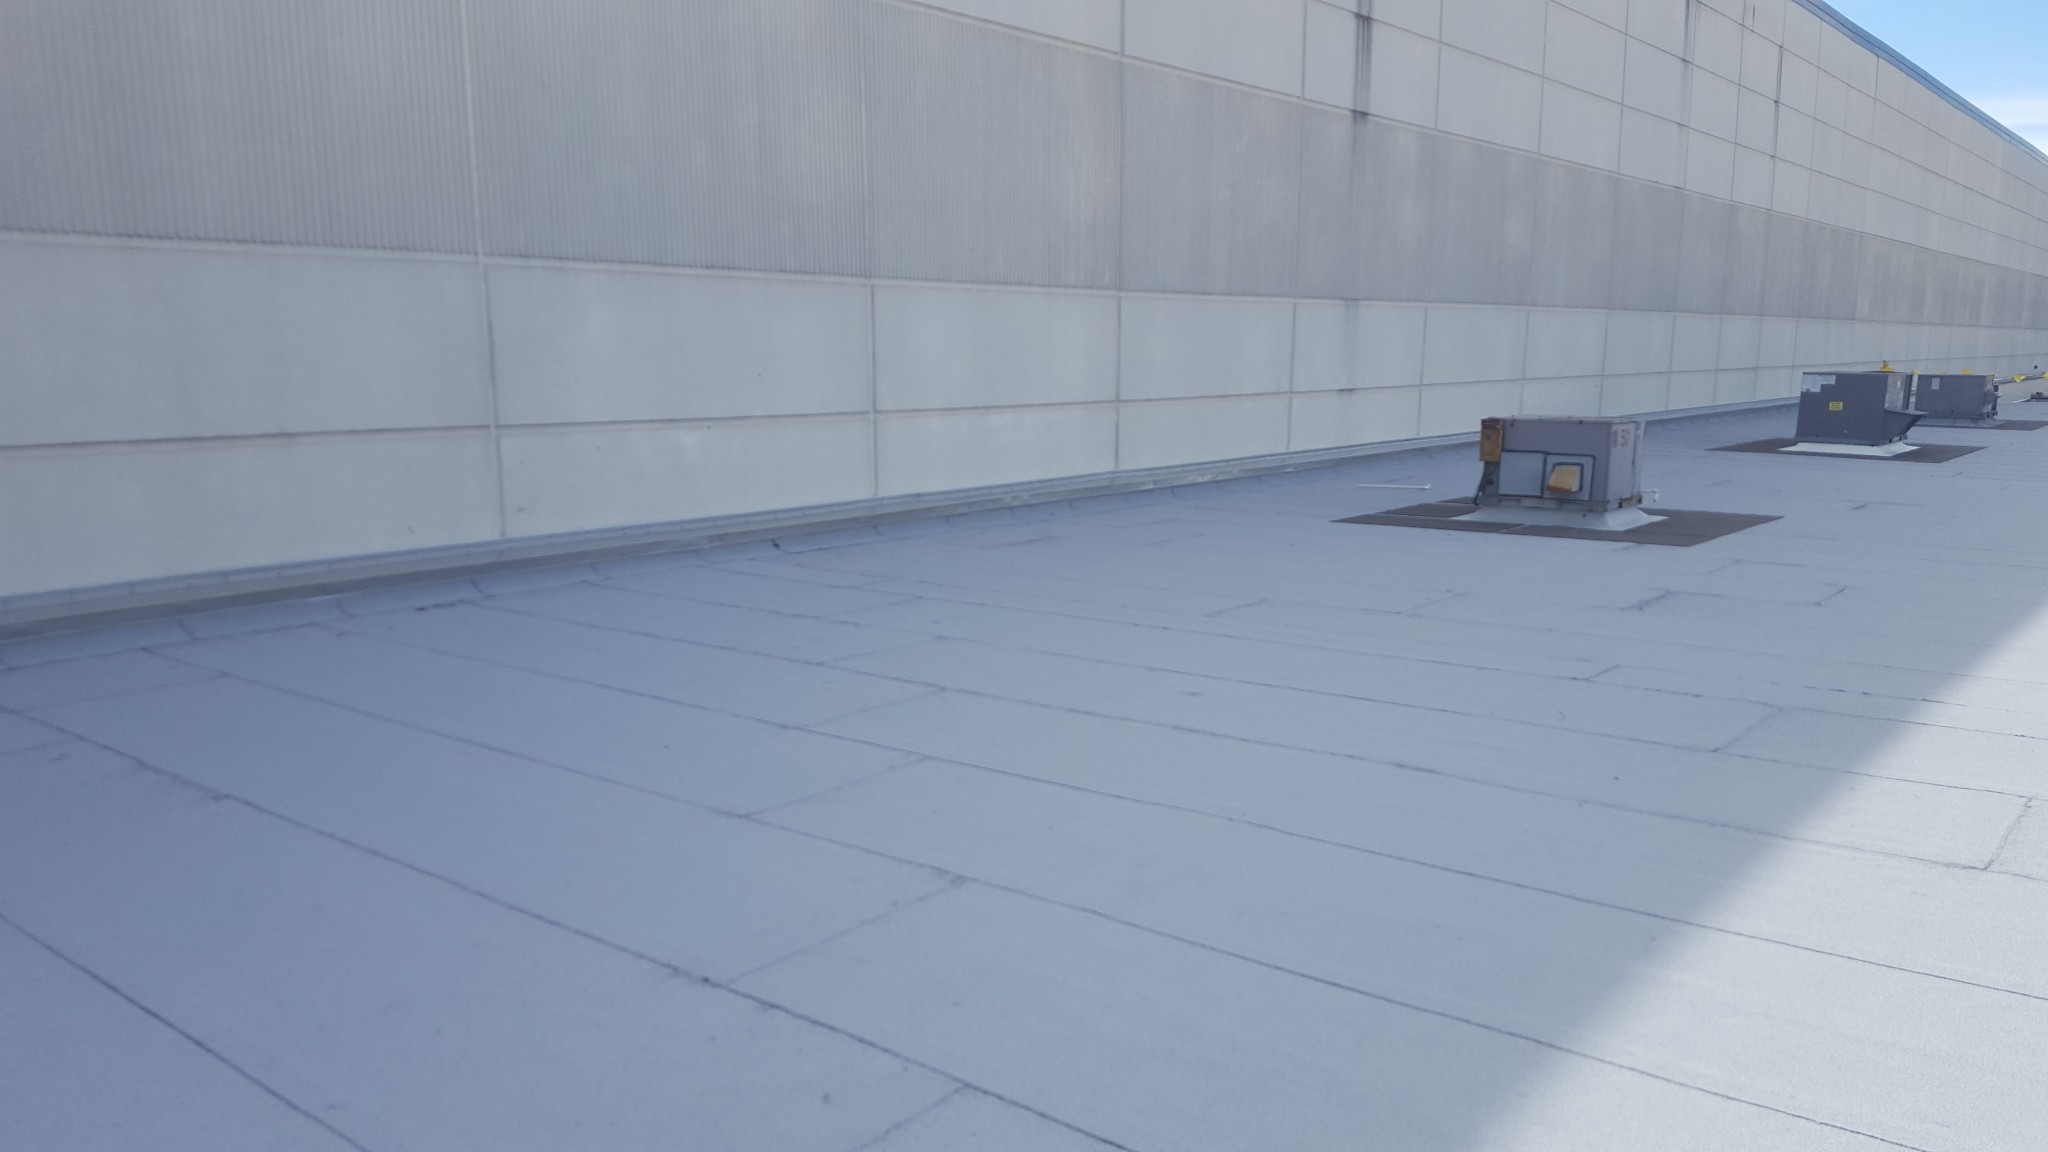 Kellogg Roof Areas 2 Amp 11 Evans Roofing Company Inc